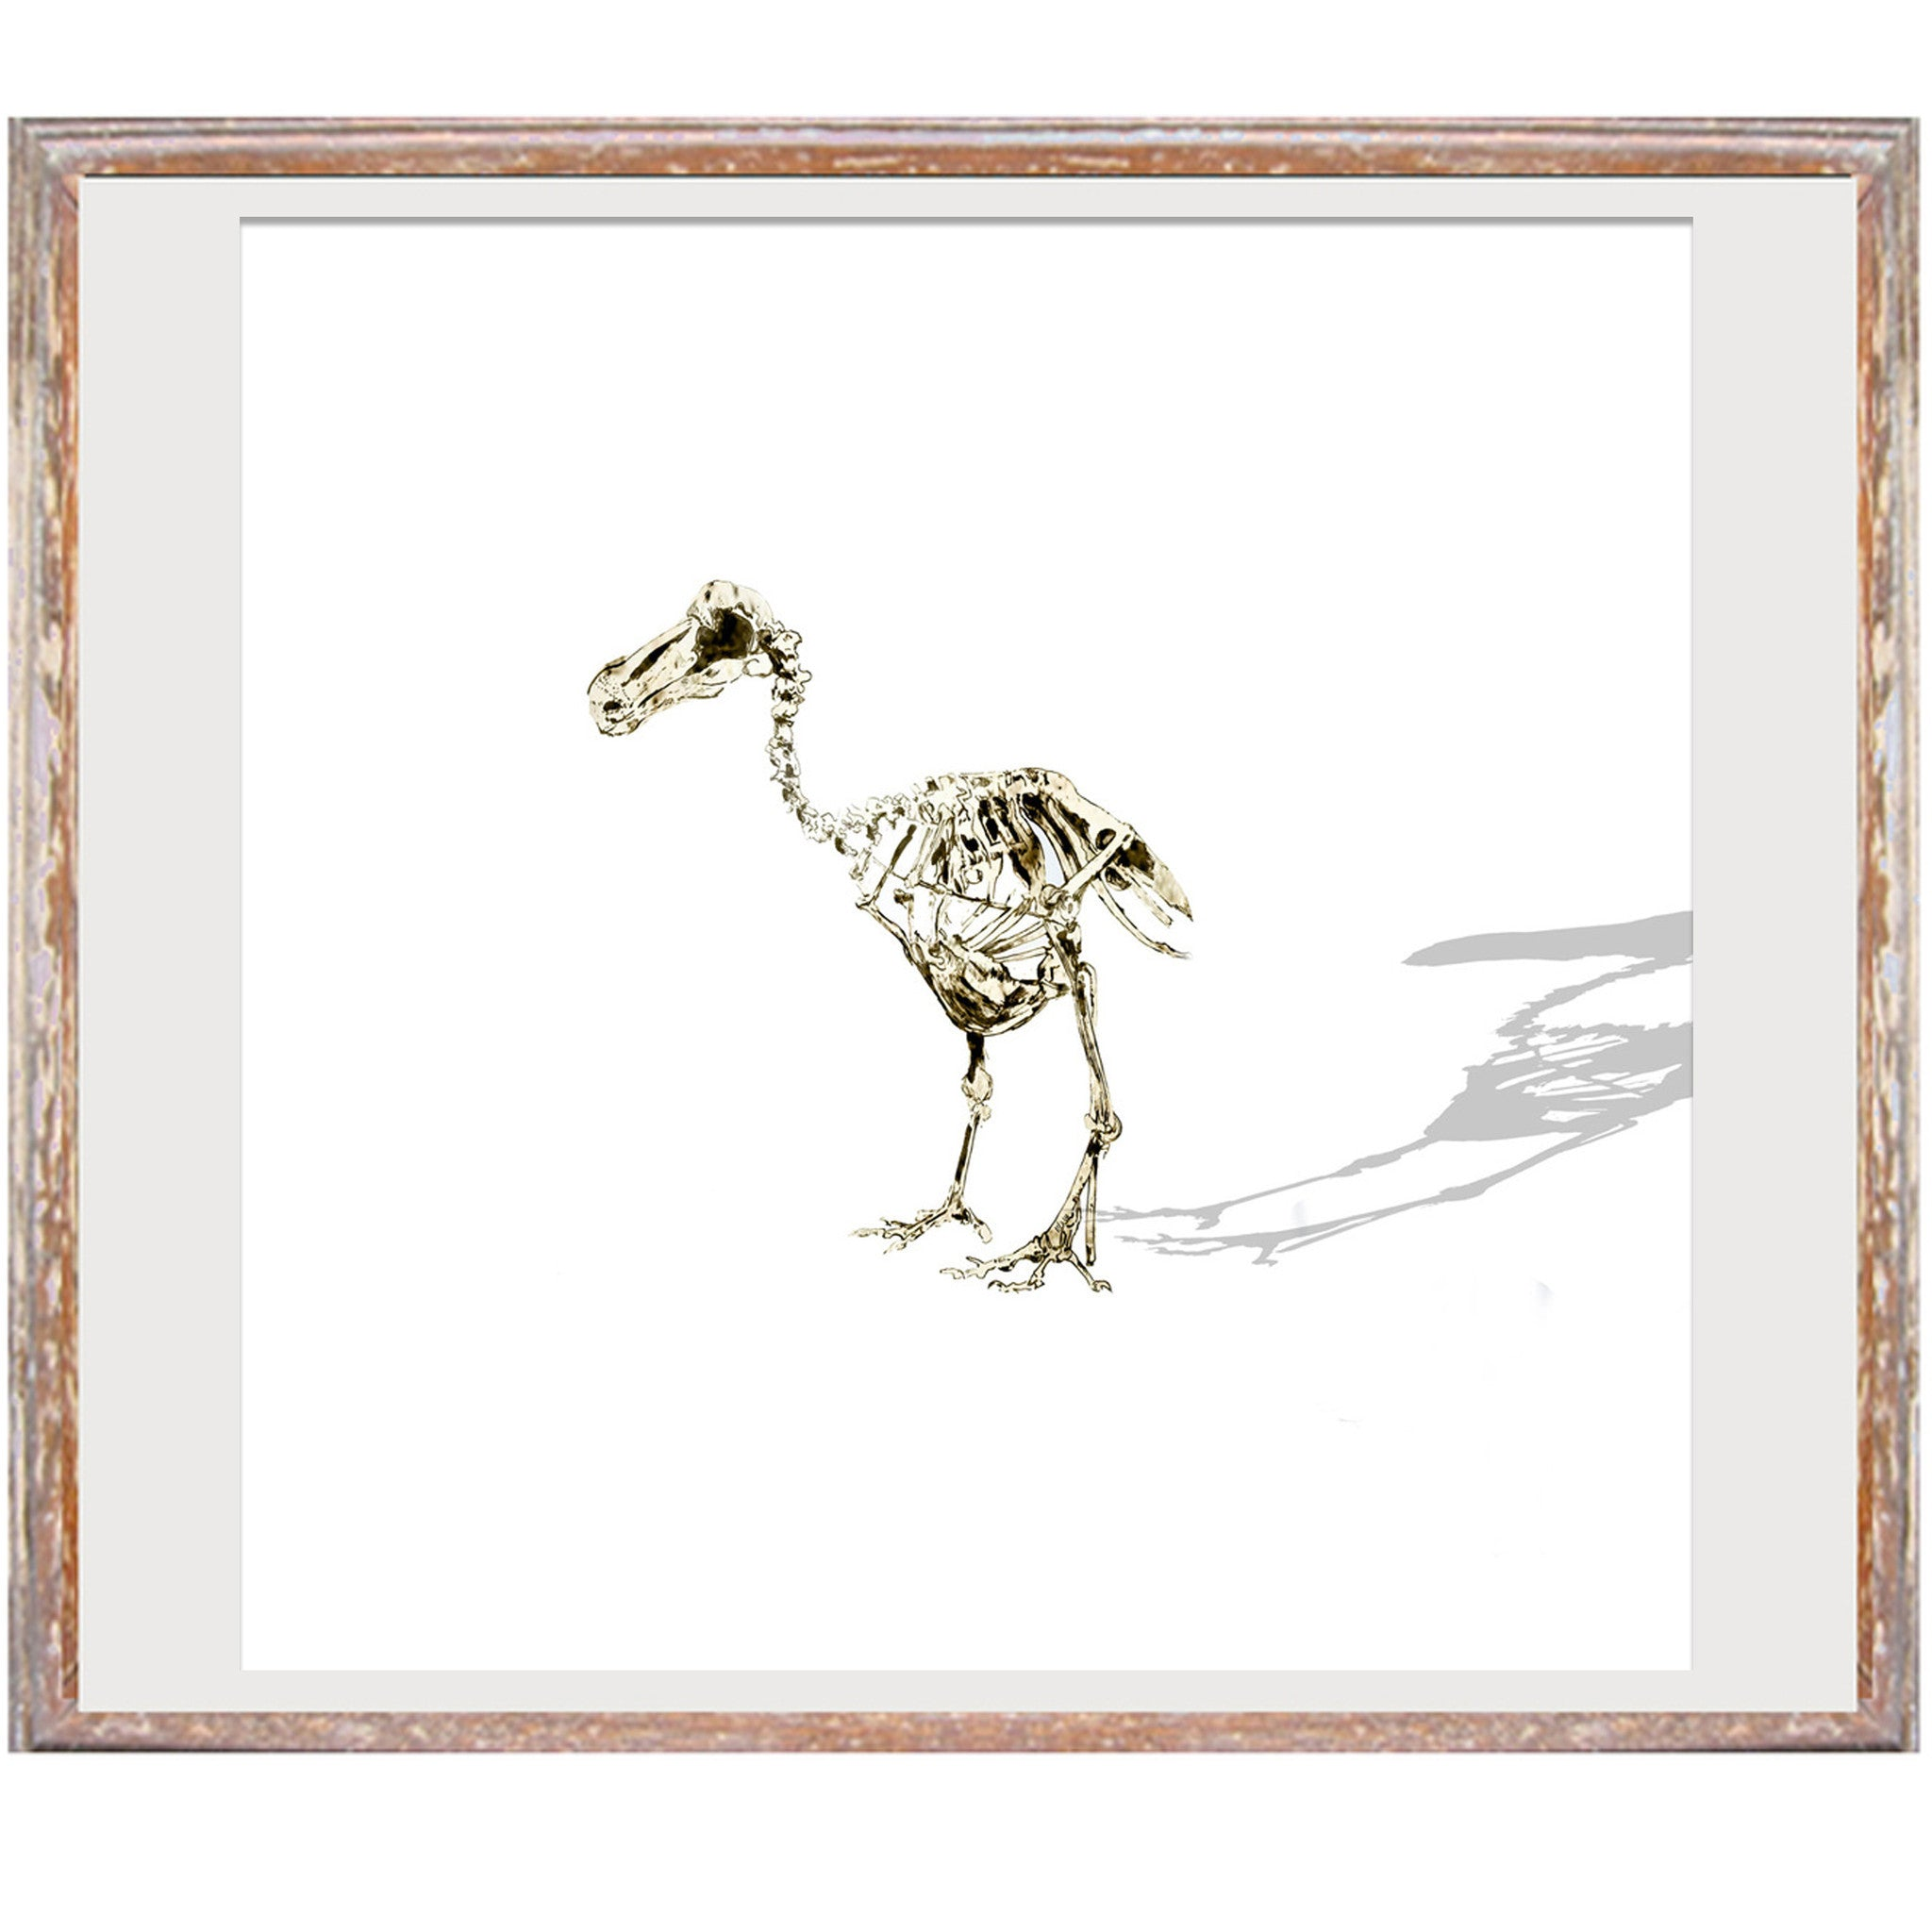 "Signed Print / ""The Lonely Dodo"""